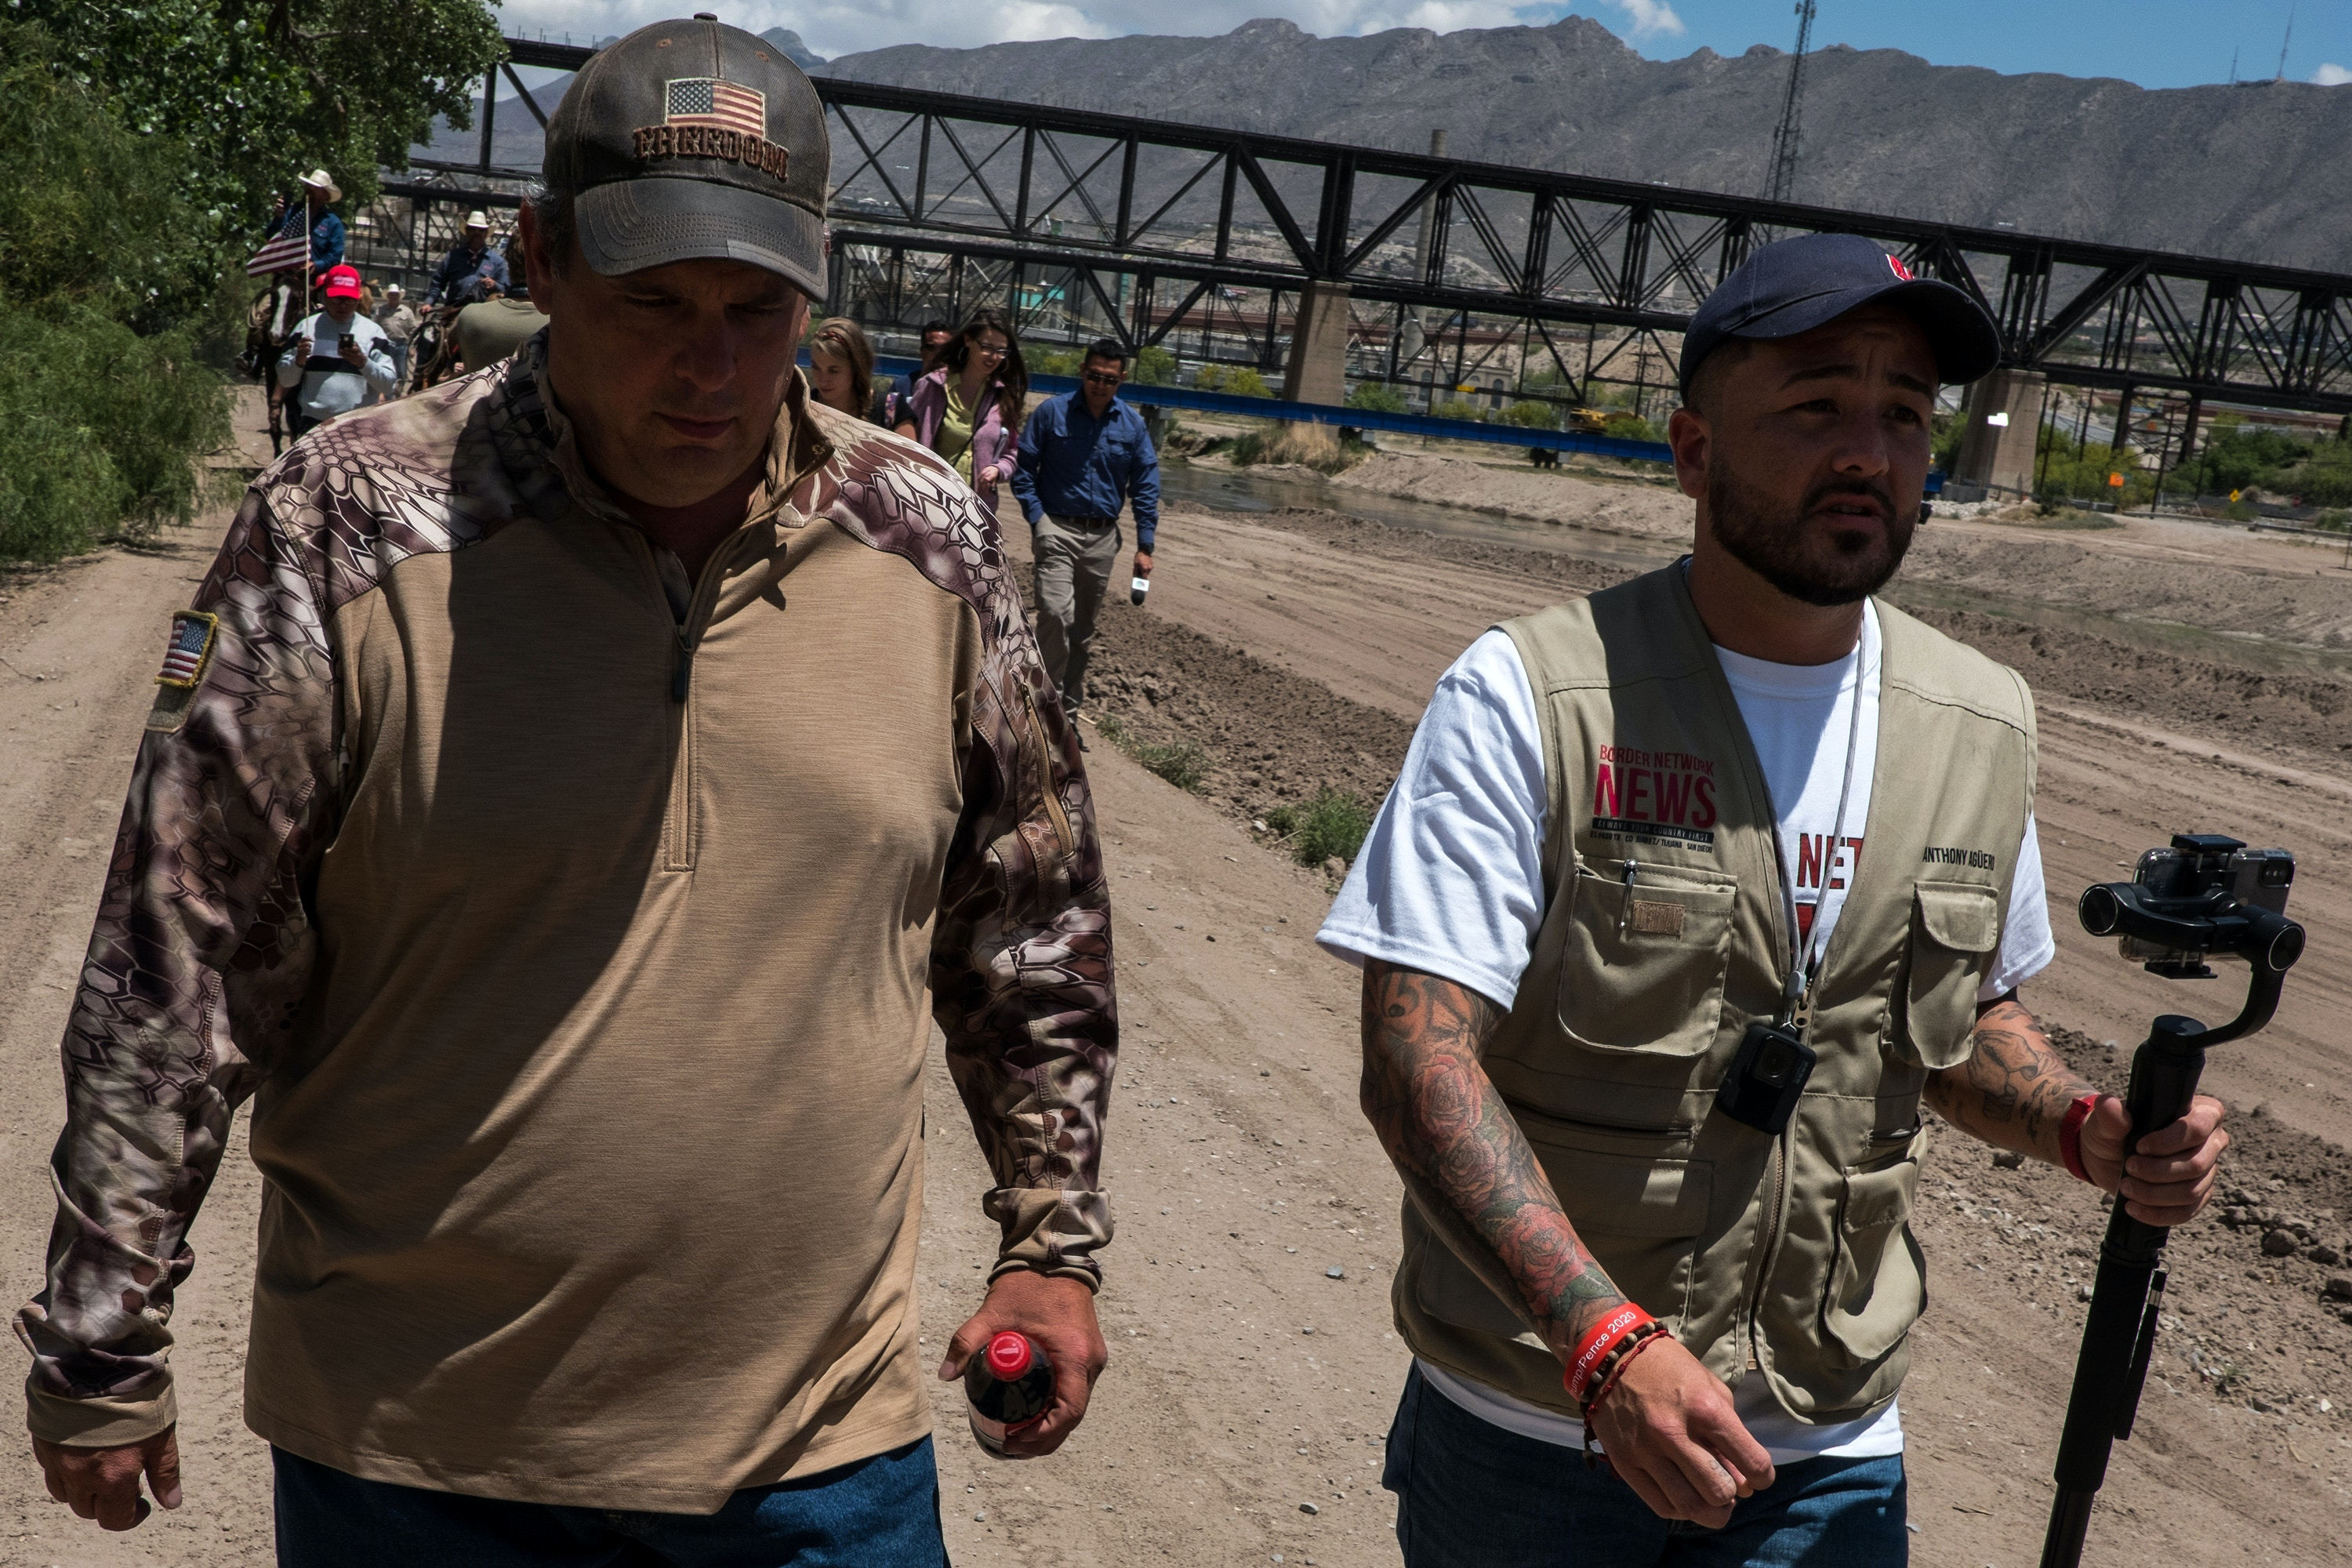 Jim Benvie, spokesman for the newly-named Guardian Patriots, left, and Anthony Agüero walk along the banks of the Rio Grande nearby the U.S.-México border on the outskirts of Sunland Park, New Mexico, Saturday, May 11, 2019. (Joel Angel Juárez for The Intercept)